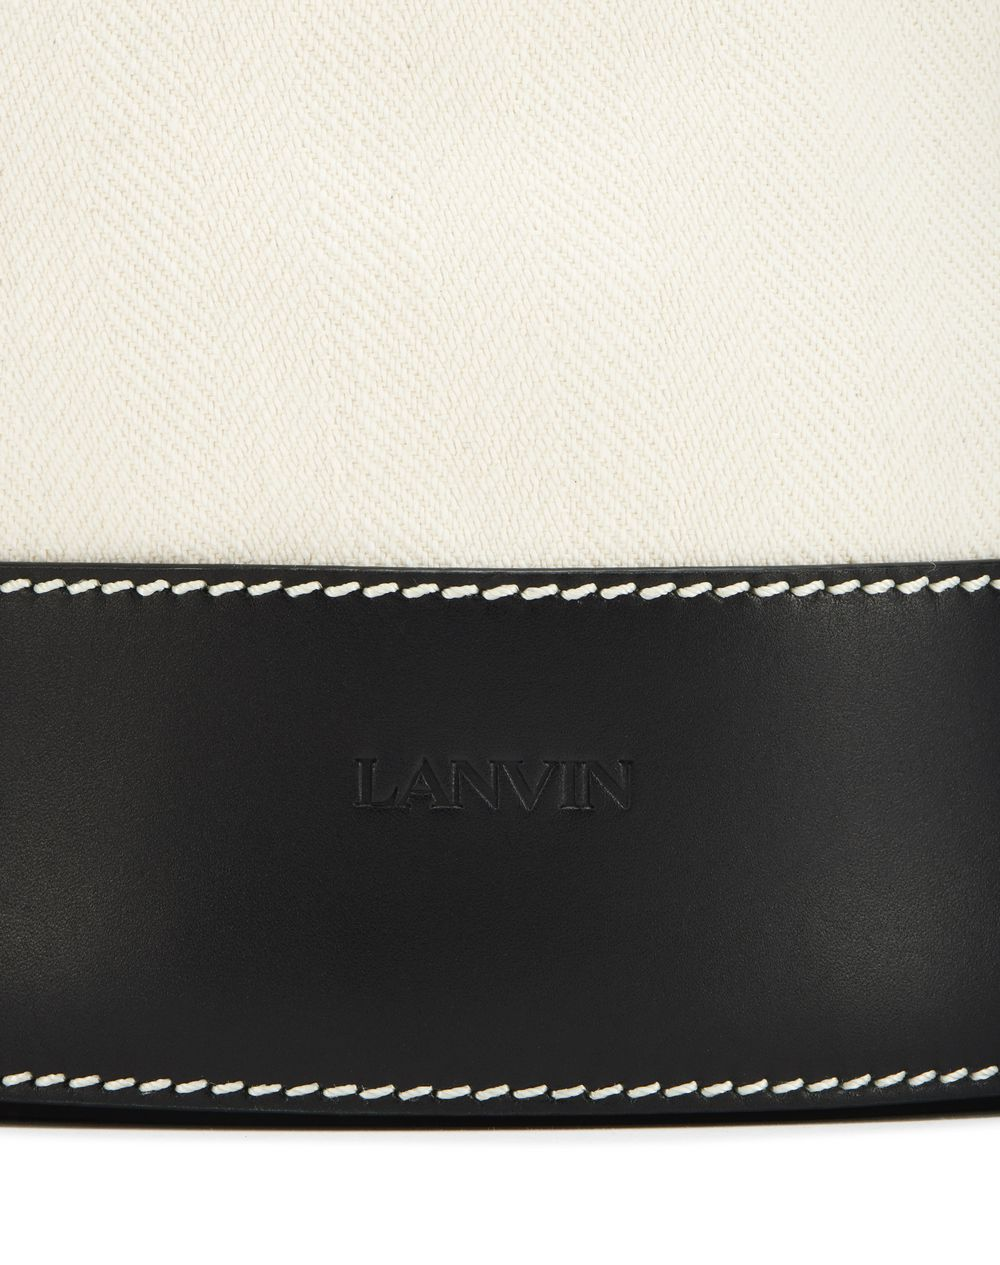 SMALL DUAL-MATERIAL NEIL BAG - Lanvin